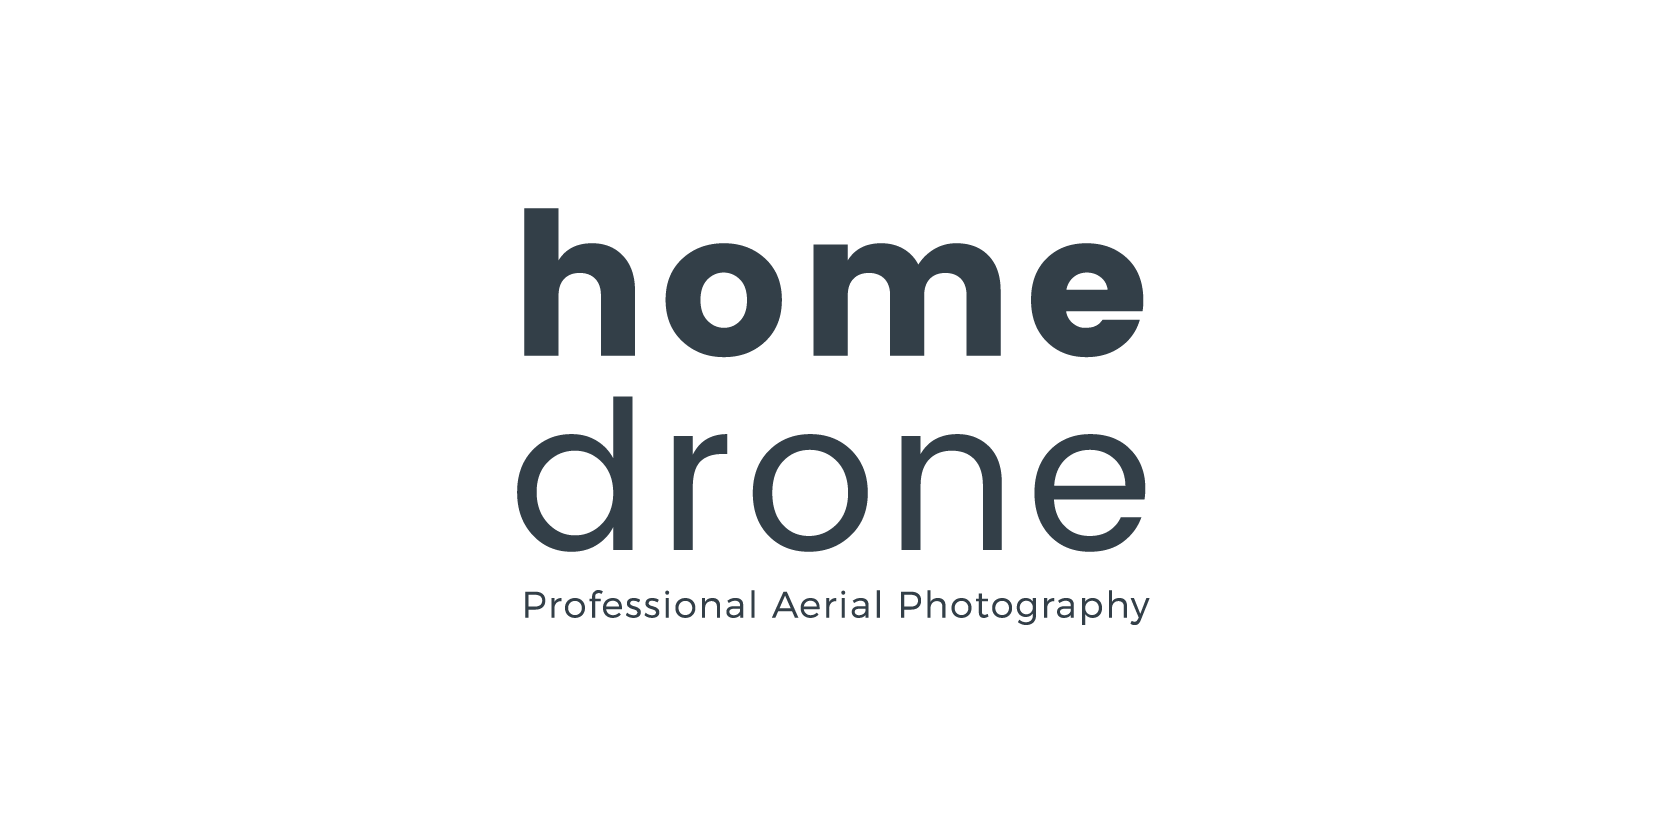 homedrone-01